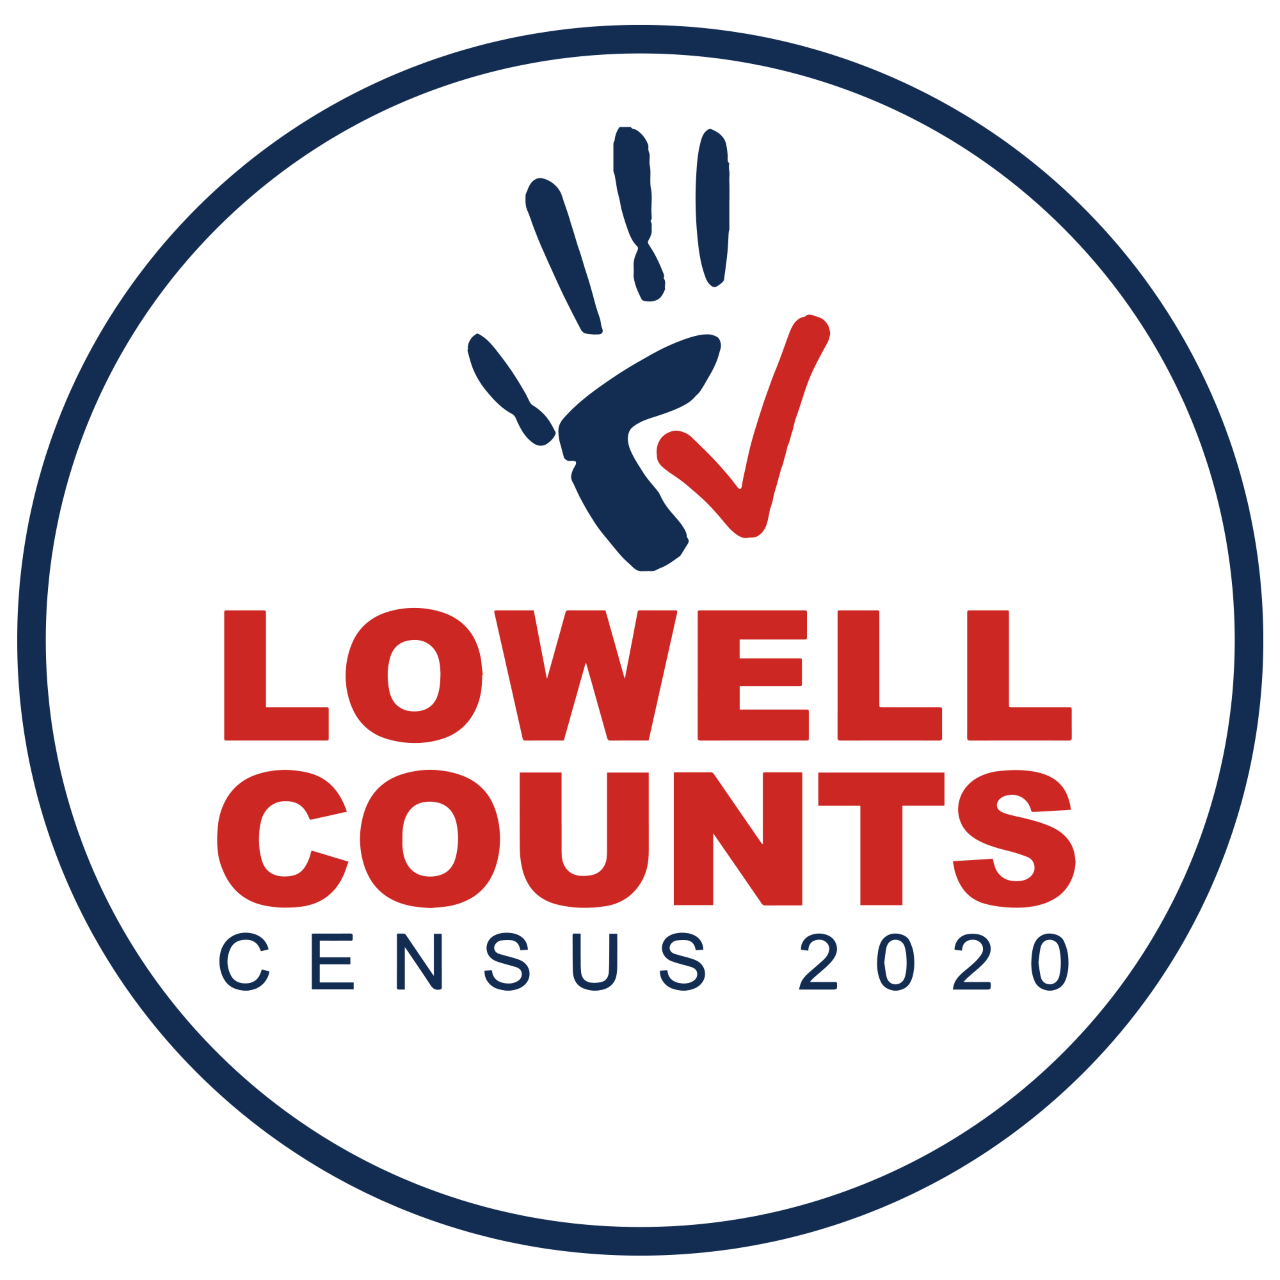 Lowell Counts Census 2020 Image